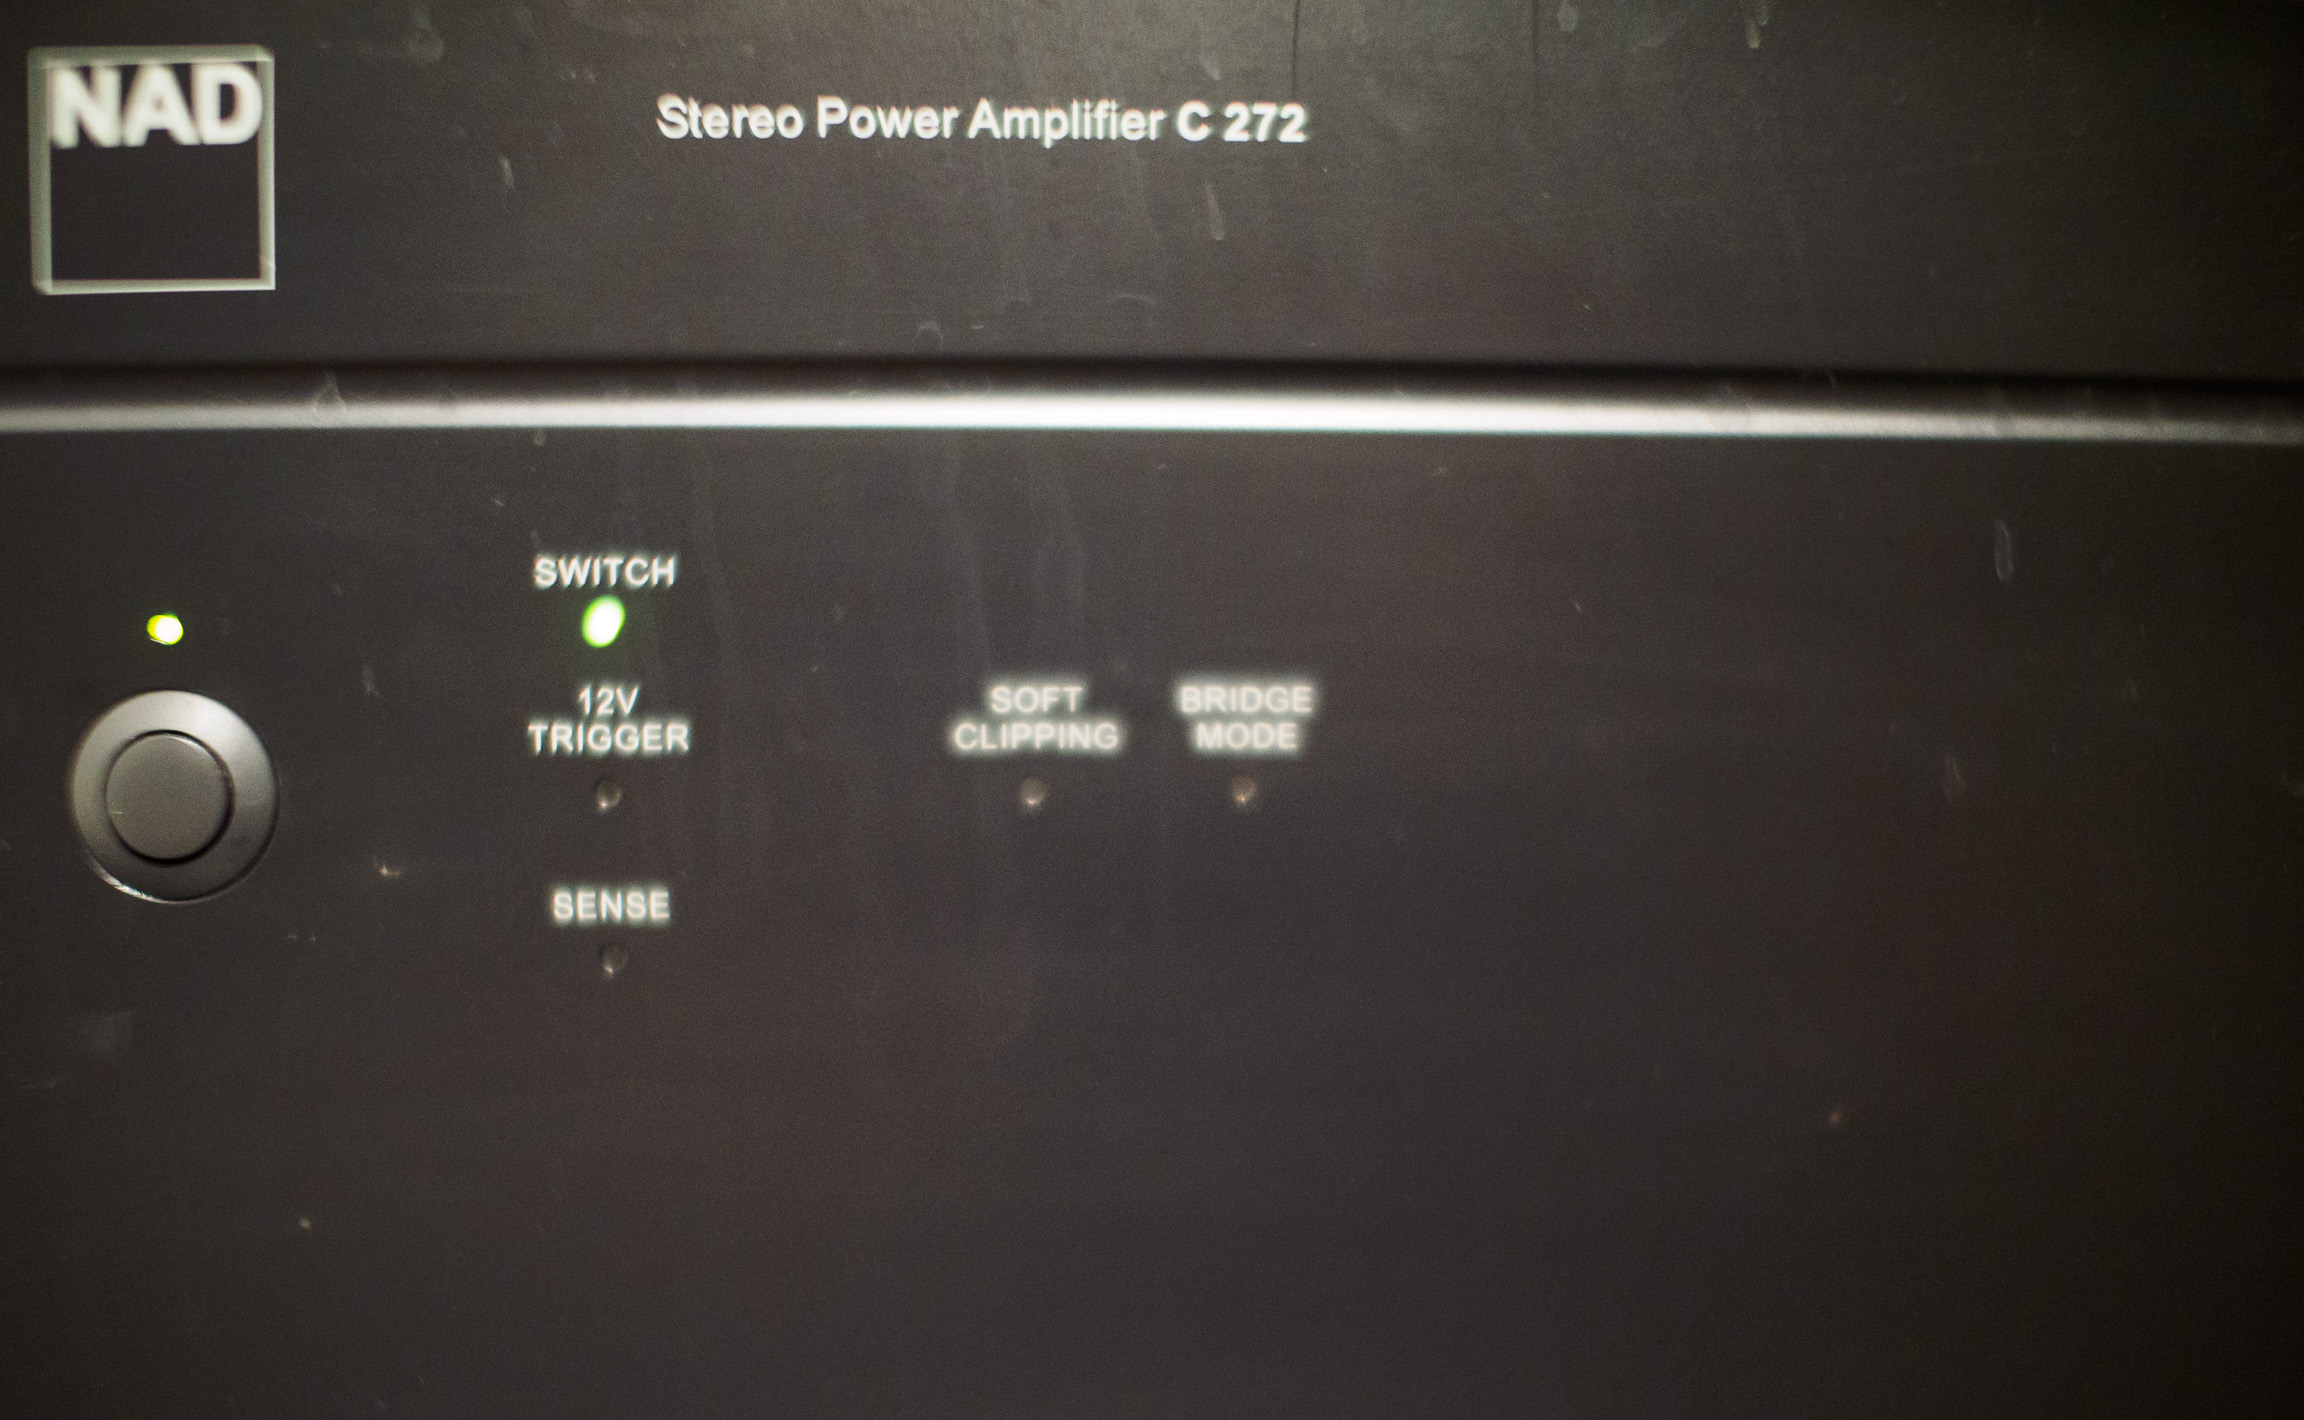 The old amplifier's faceplate.